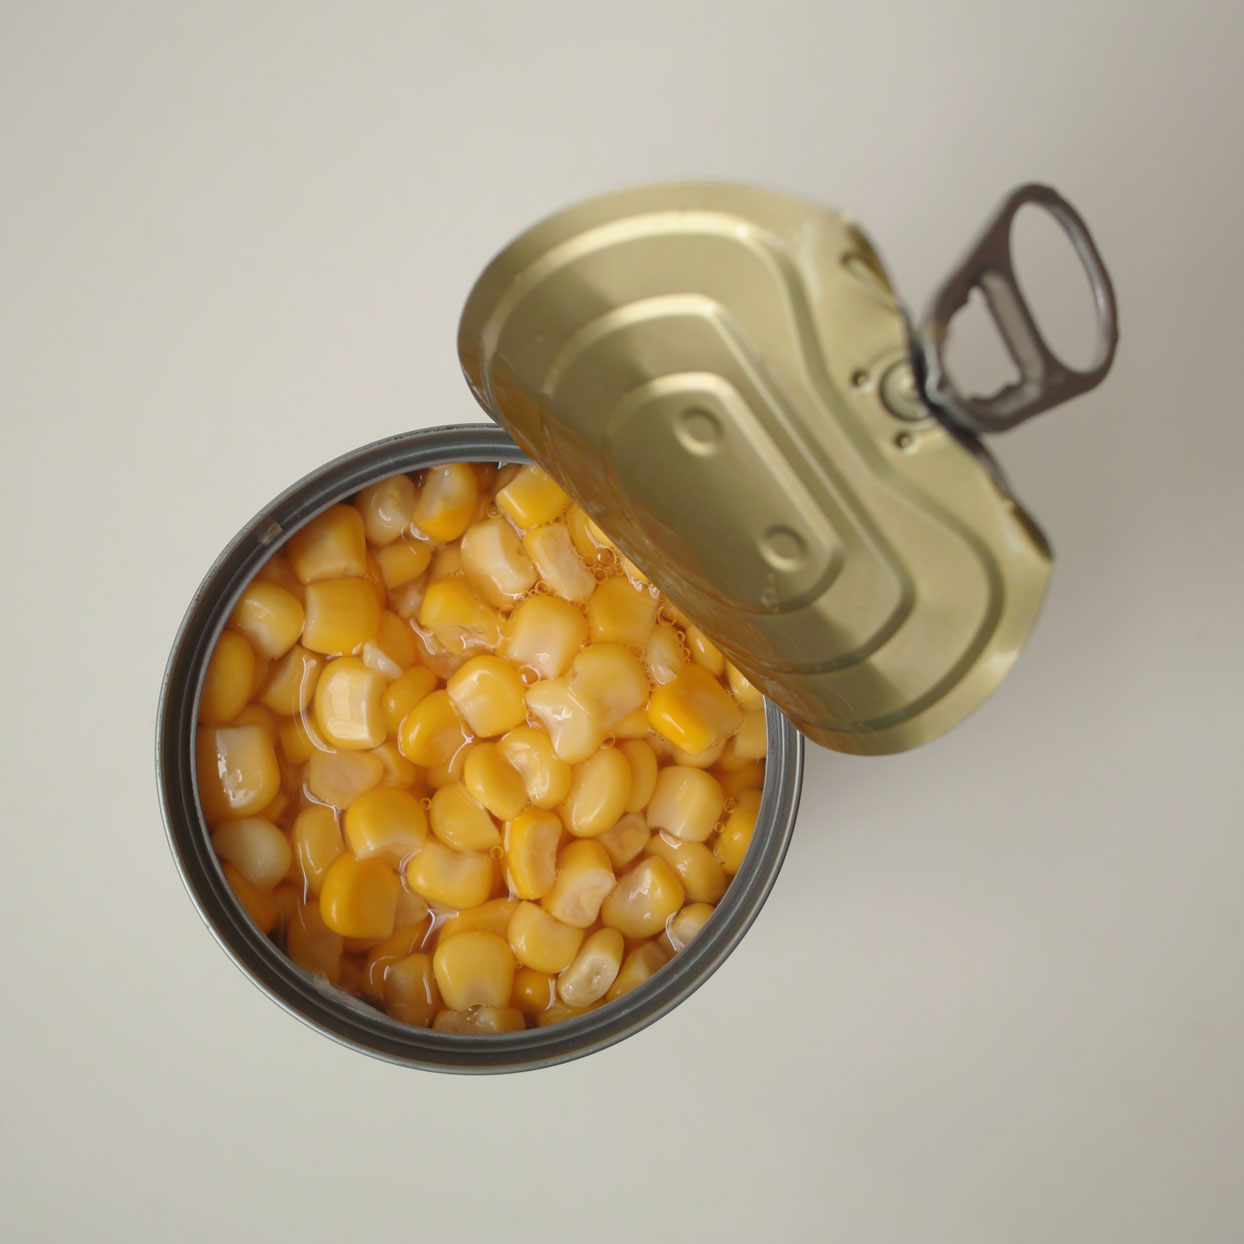 opened can of corn